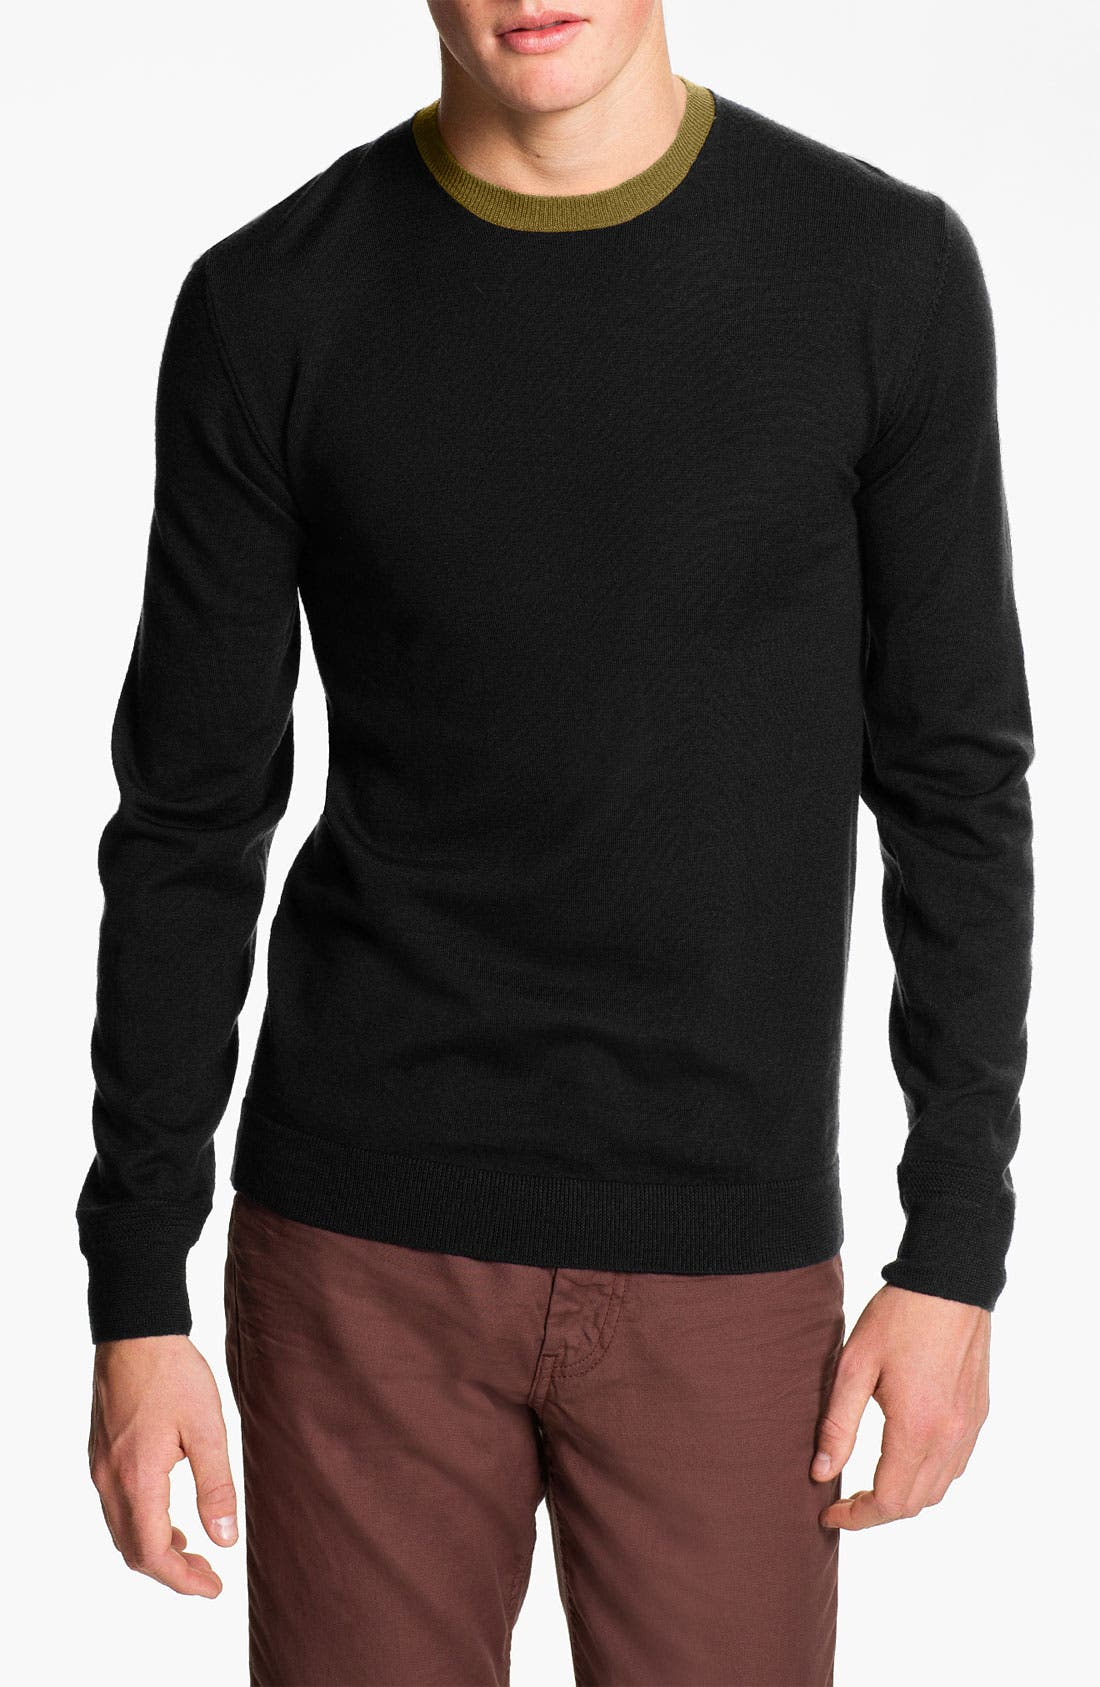 Main Image - MARC BY MARC JACOBS 'Ulrich' Merino Wool Crewneck Sweater